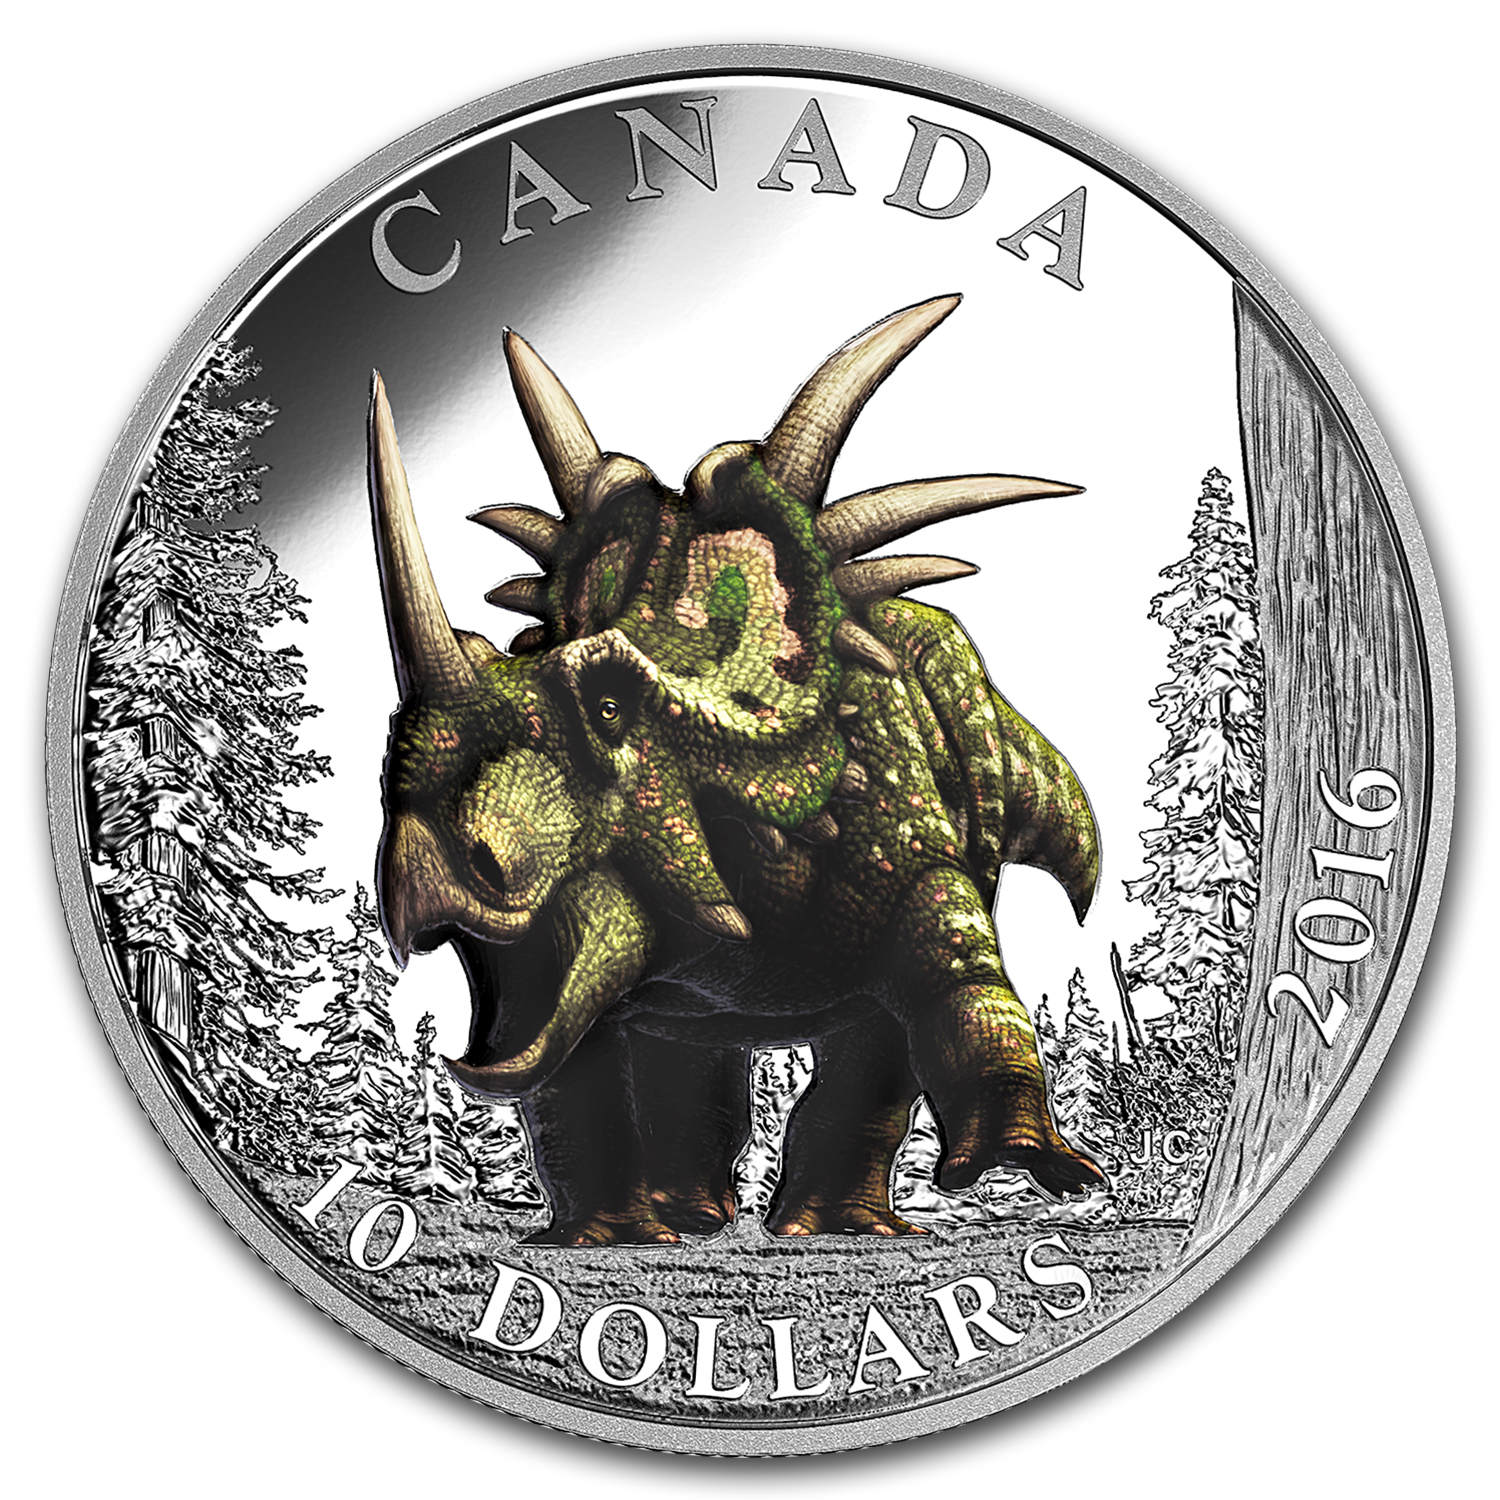 2016 Canada 1/2 oz Silver $10 Day of Dinosaurs: Spiked Lizard